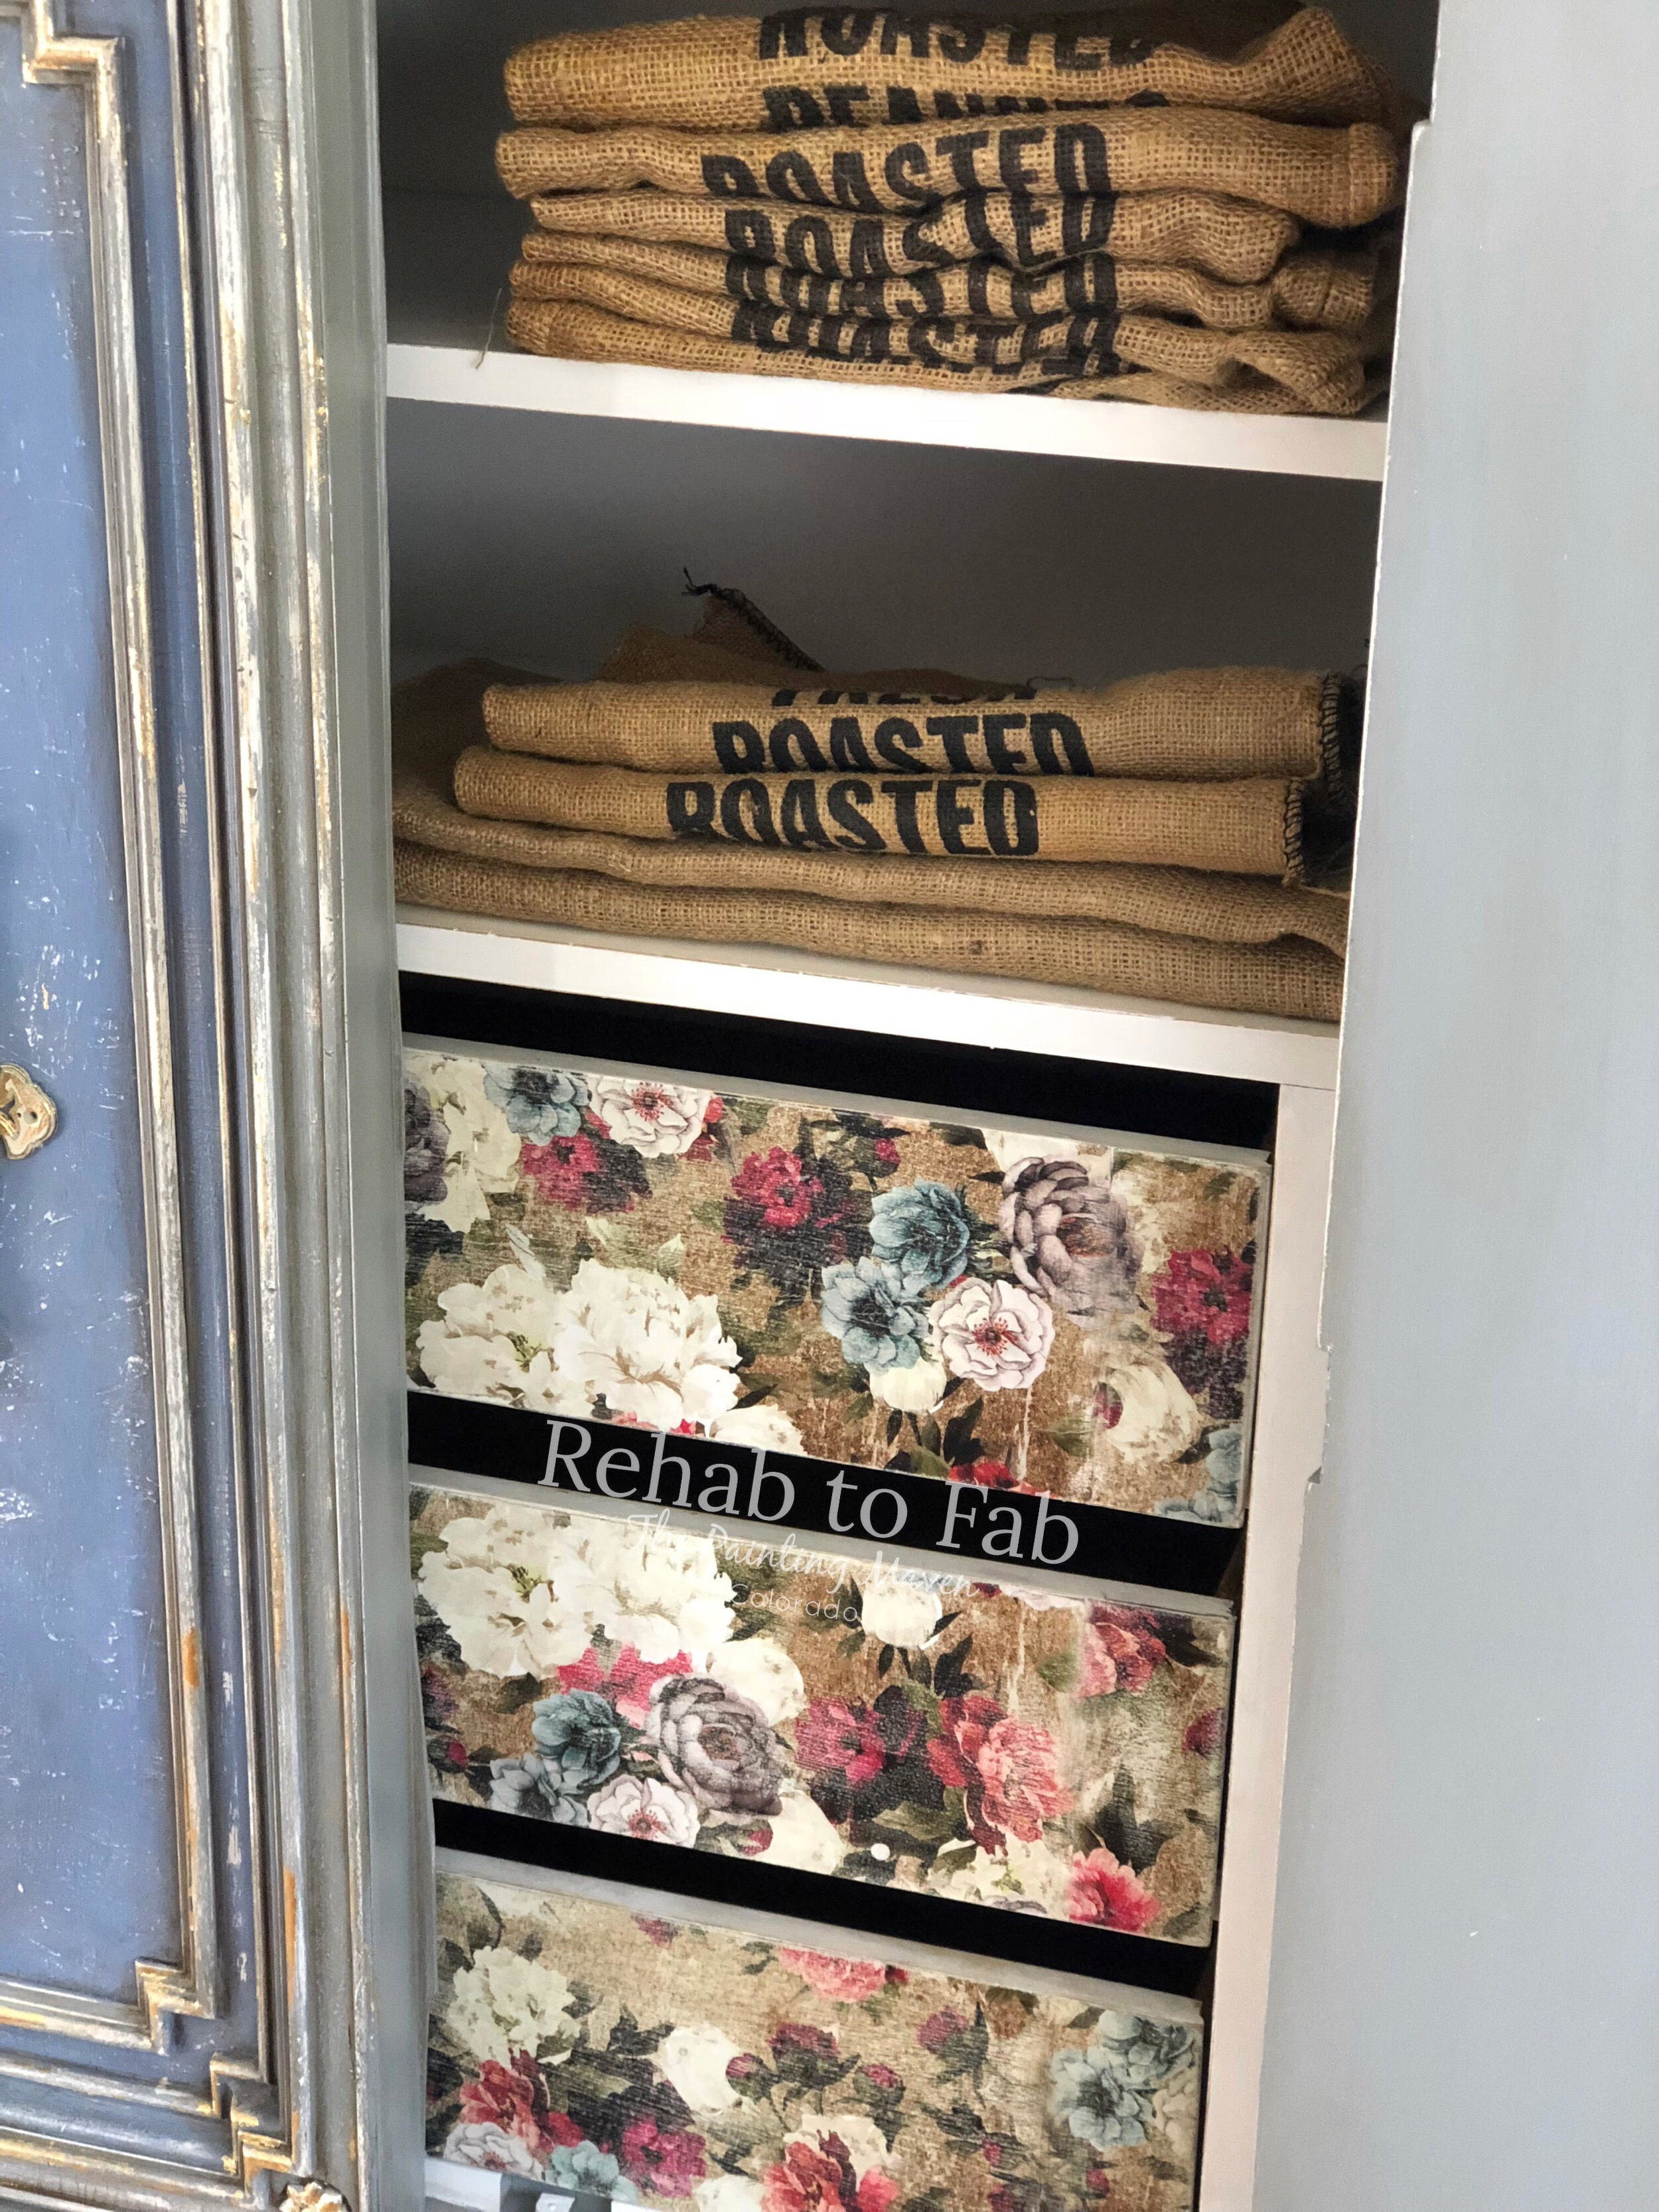 The Tea Rose Garden transfer comes in 3 sheets of continuous floral patterns for easy application with stunning results (as you can see)! And you can antique the transfer using a very fine grit sandpaper...